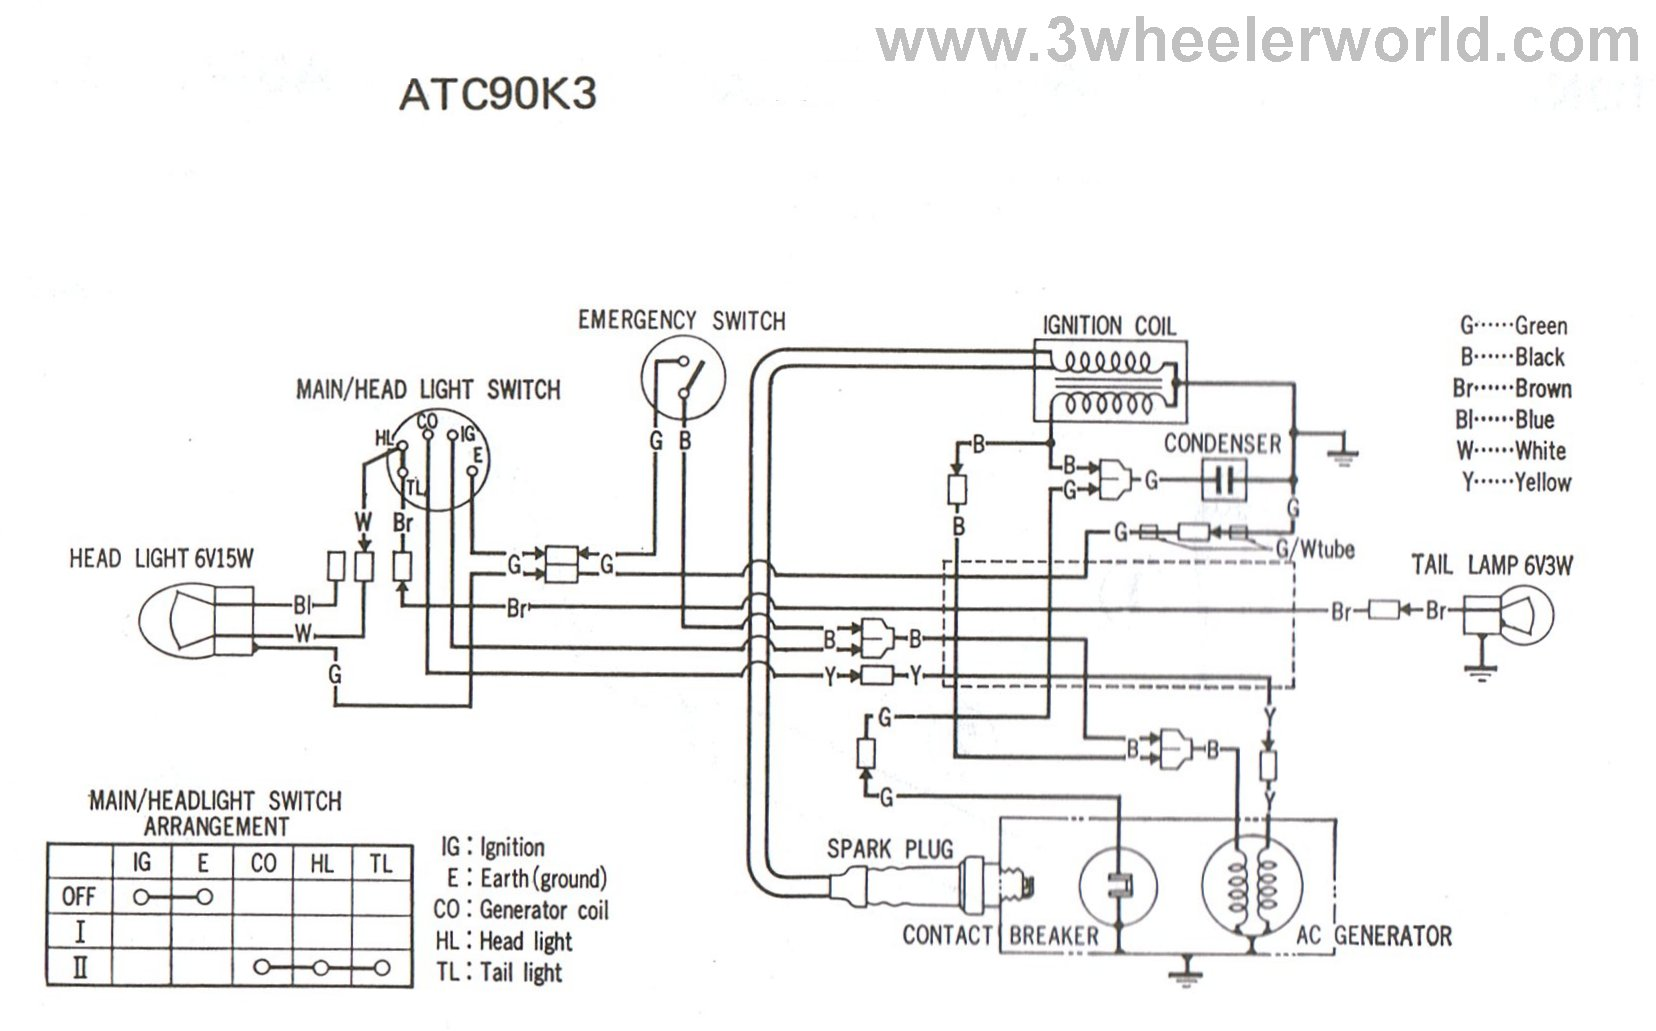 hight resolution of 3 wheeler world tech help honda wiring diagrams rh 3wheelerworld com 2005 arctic cat 400 wiring